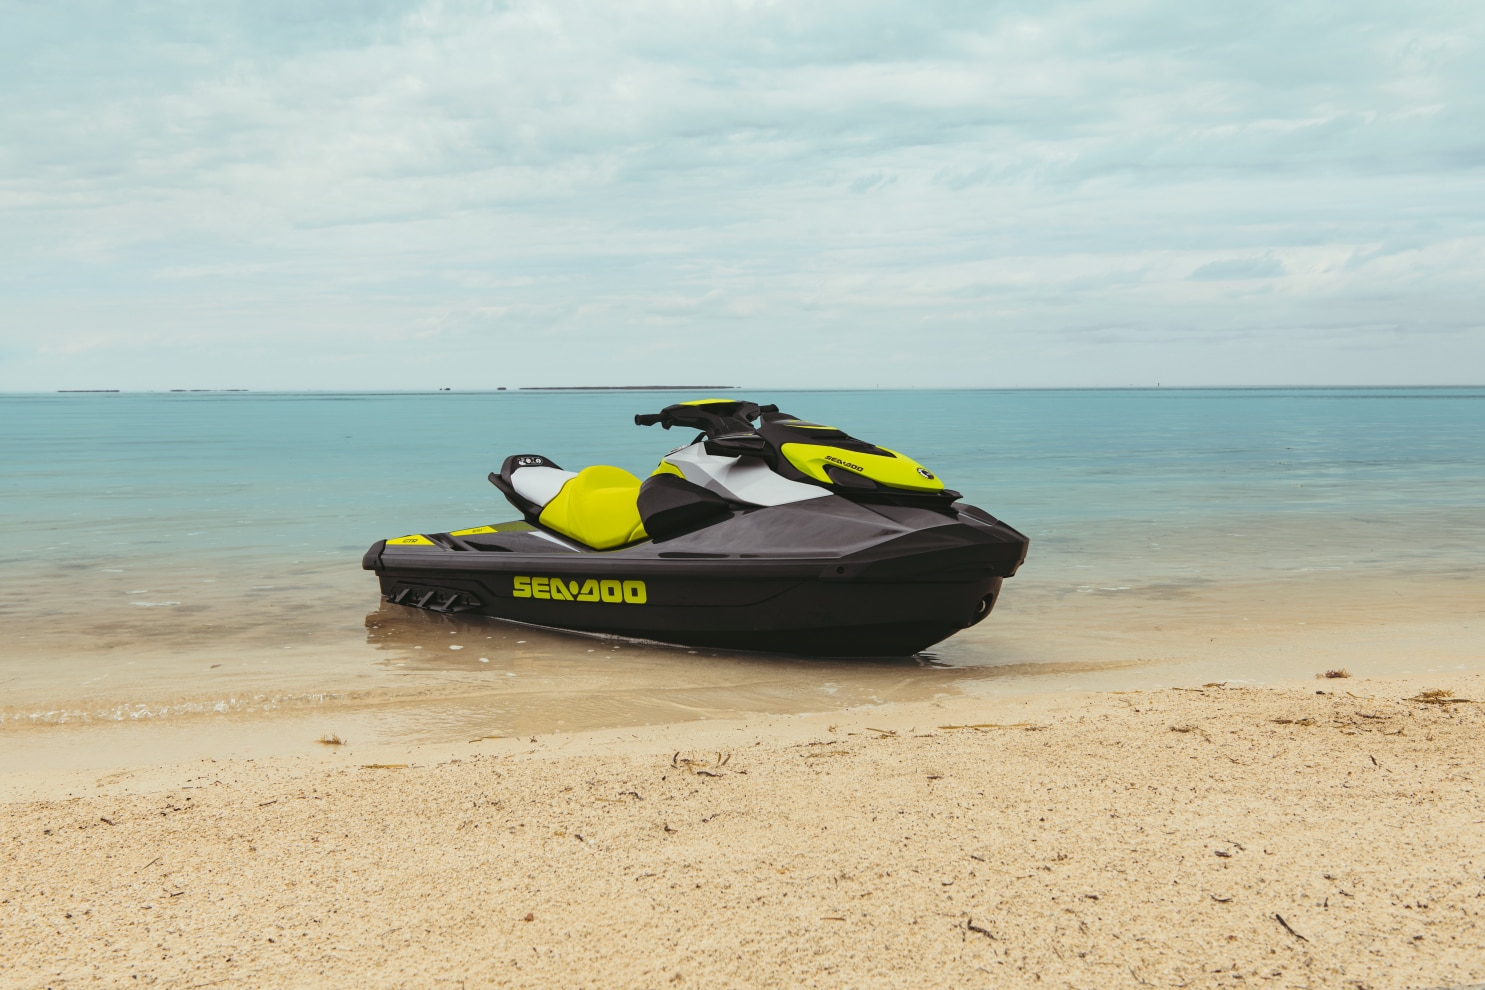 A Sea-Doo GTR parked on the sand of a beach